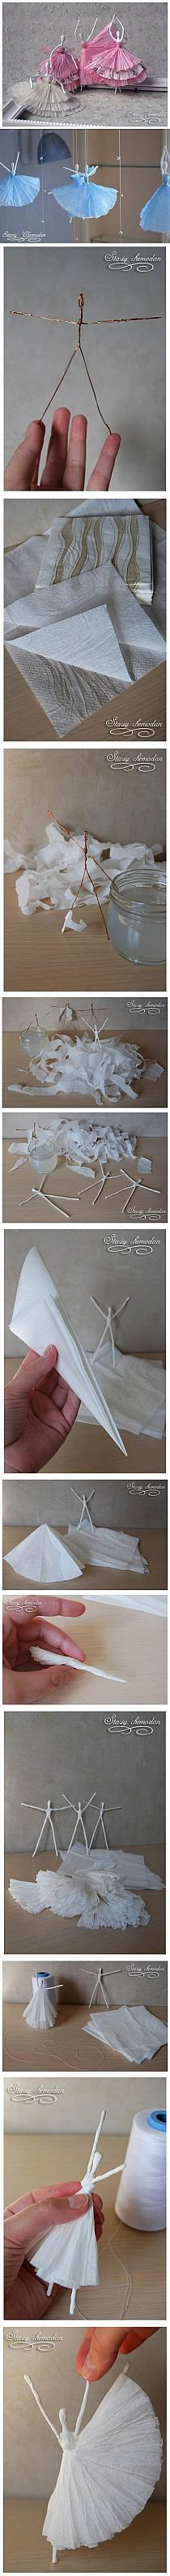 DIY Crafts for Girls - Napkin Paper Ballerina - So simple and crafty! Making these today with my 6 year old daugther! Cute Crafts, Diy And Crafts, Crafts For Kids, Arts And Crafts, Simple Crafts, Diy Projects To Try, Craft Projects, Craft Ideas, Craft Tutorials